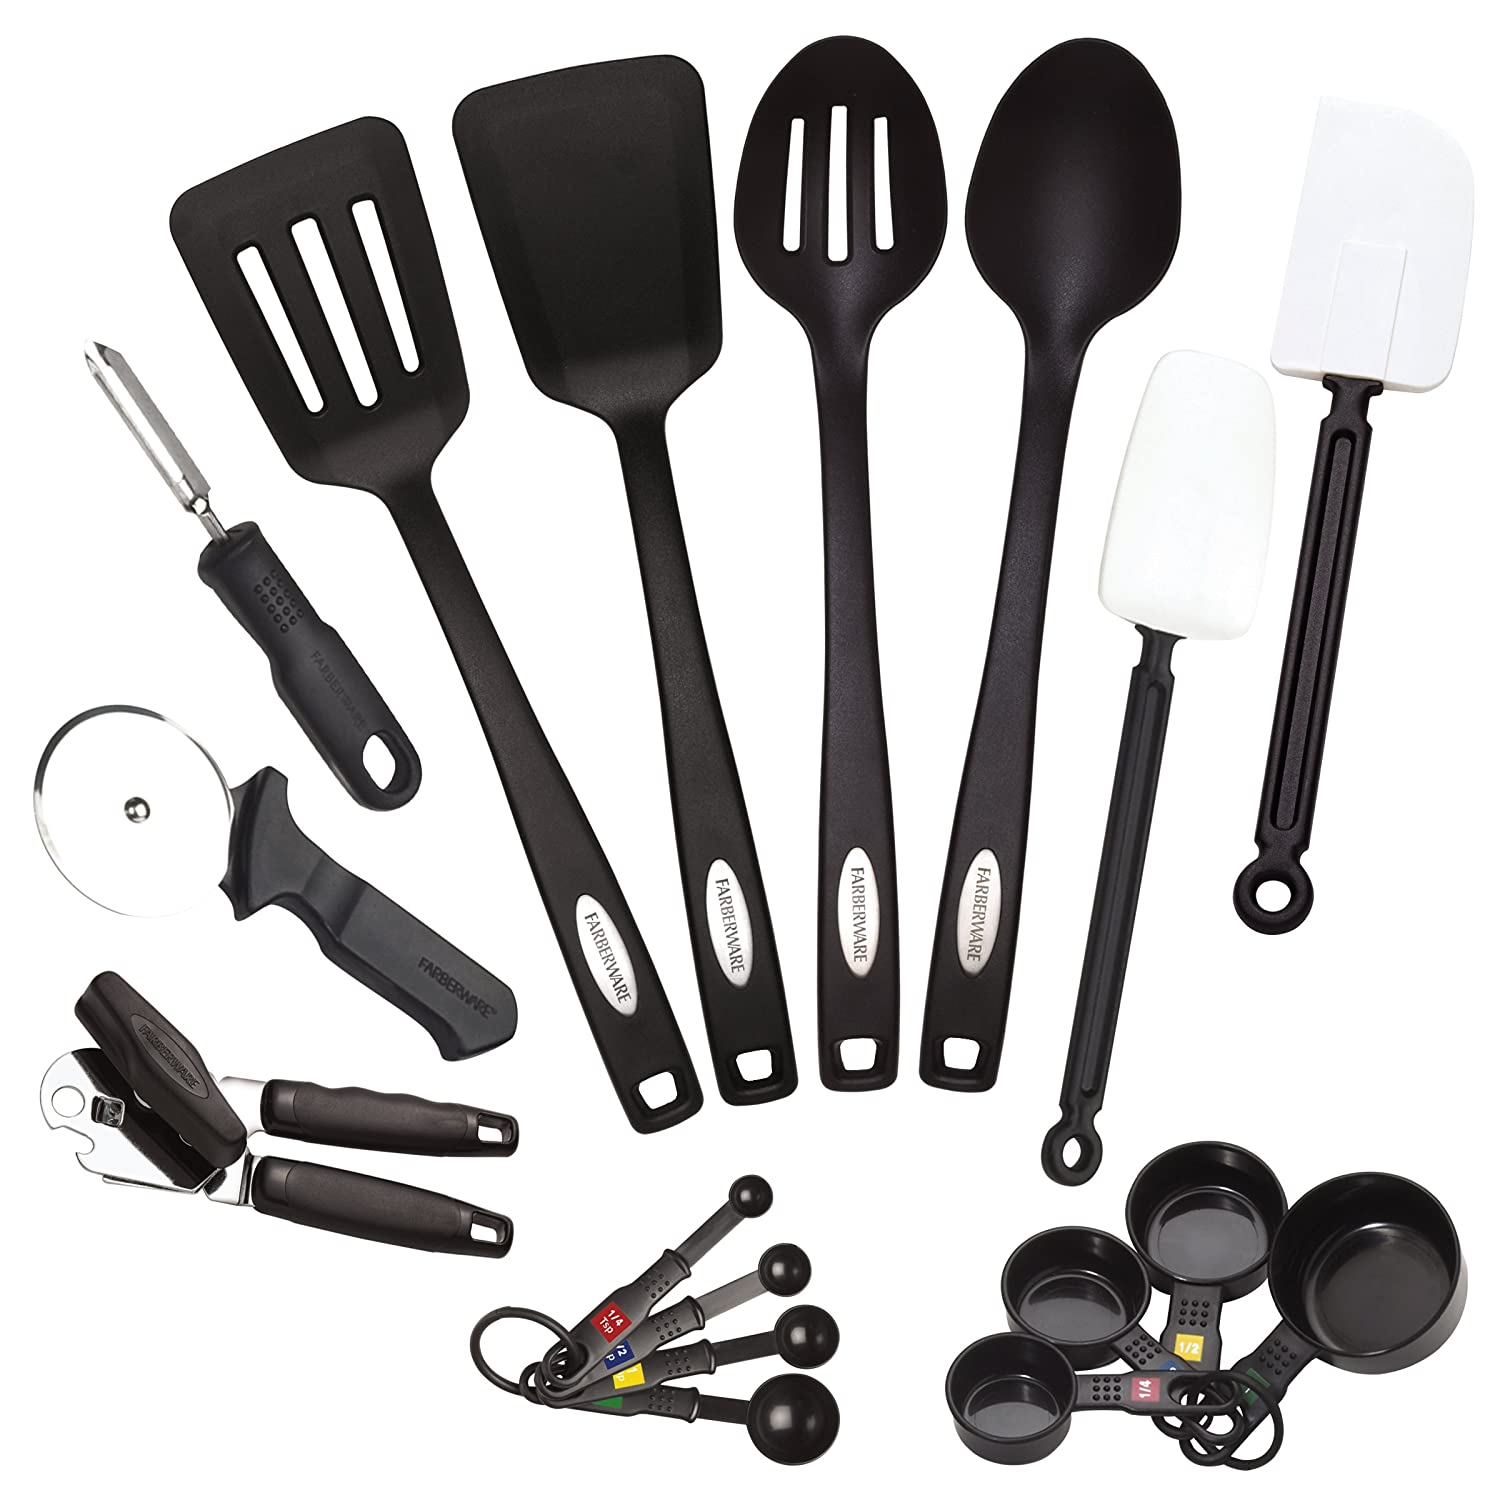 Farberware classic kitchen tools for Kitchen tool set of 6pcs sj